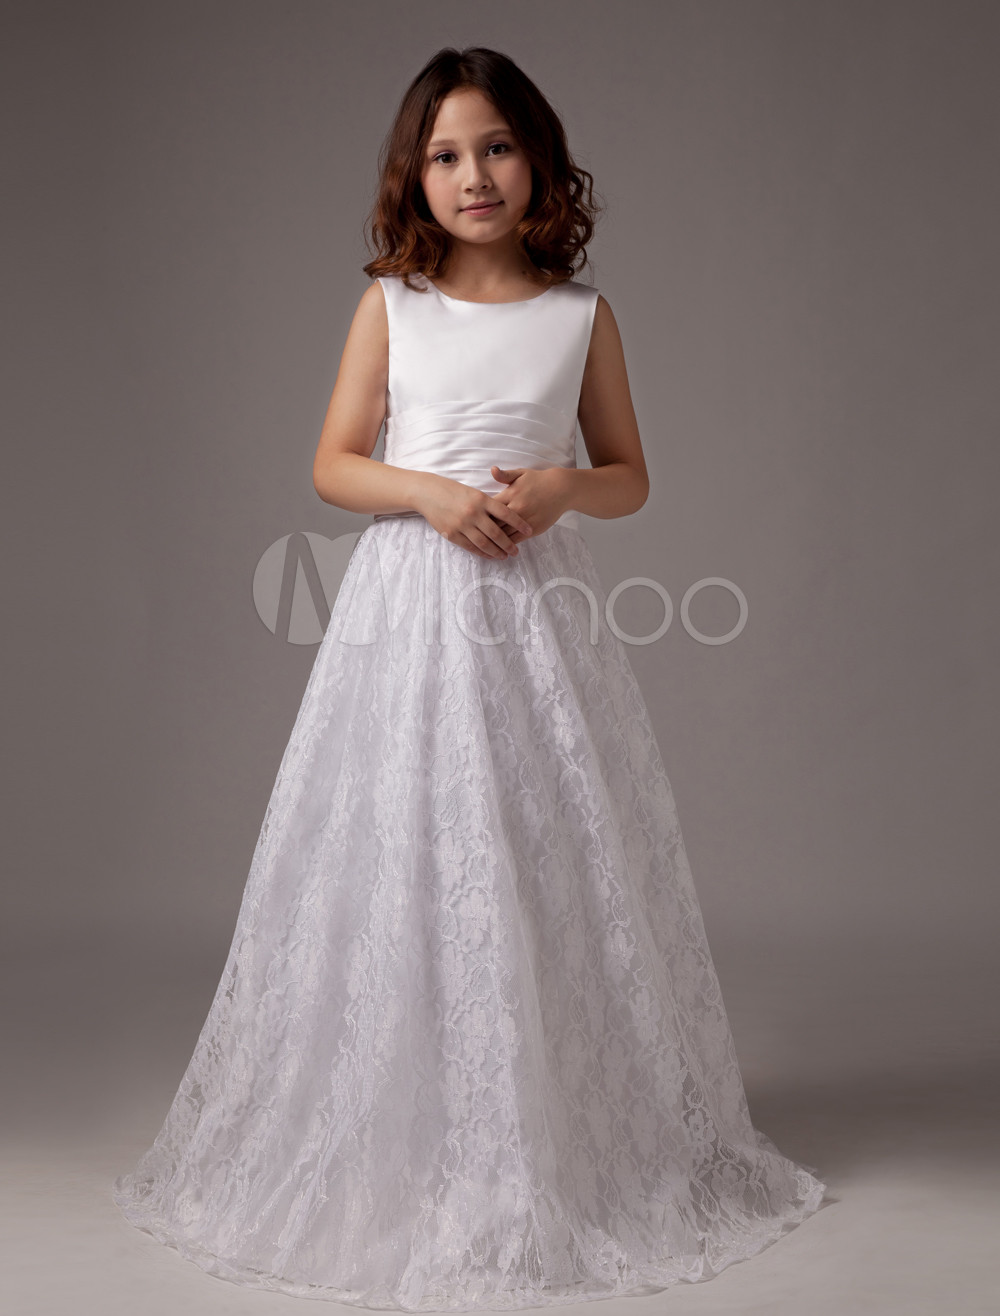 Long Flower Girls Dresses For Wedding Gowns Ankle-Length Mother Daughter Dresses Lace Glitz Pageant Dresses for Little Girls